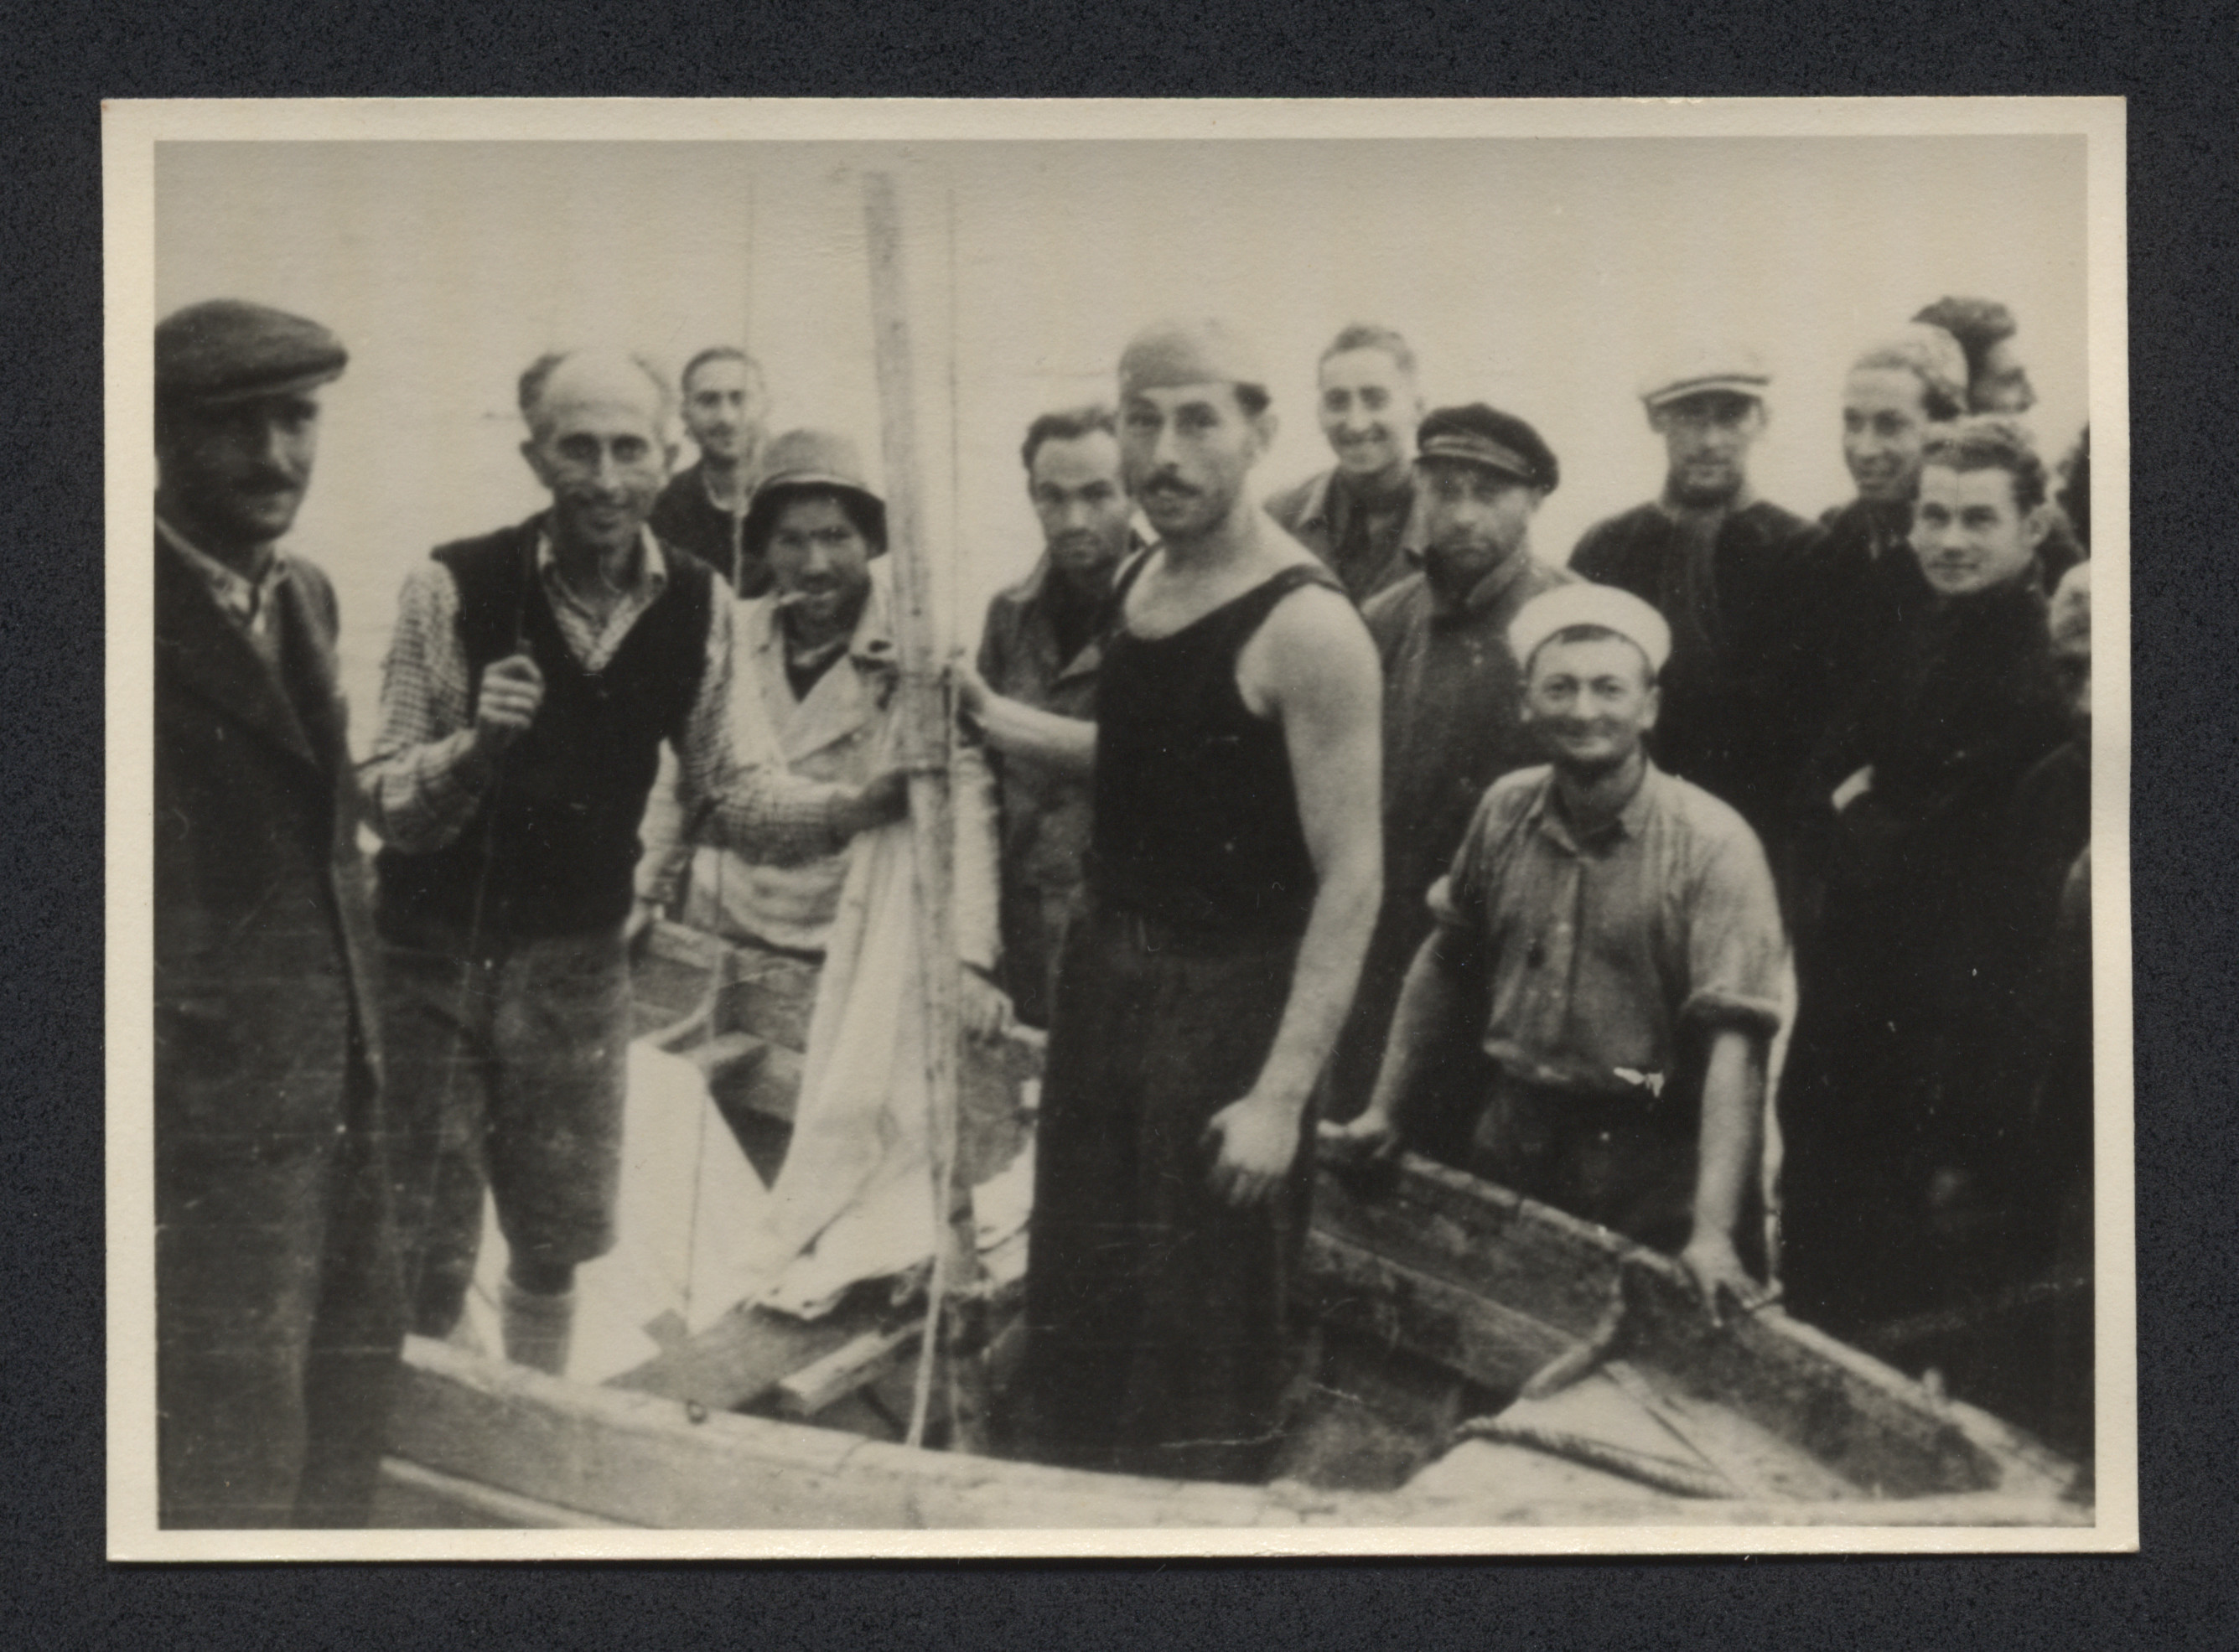 Survivors of the shipwrecked Pentcho refugee ship prepare a rescue boat to look for help.